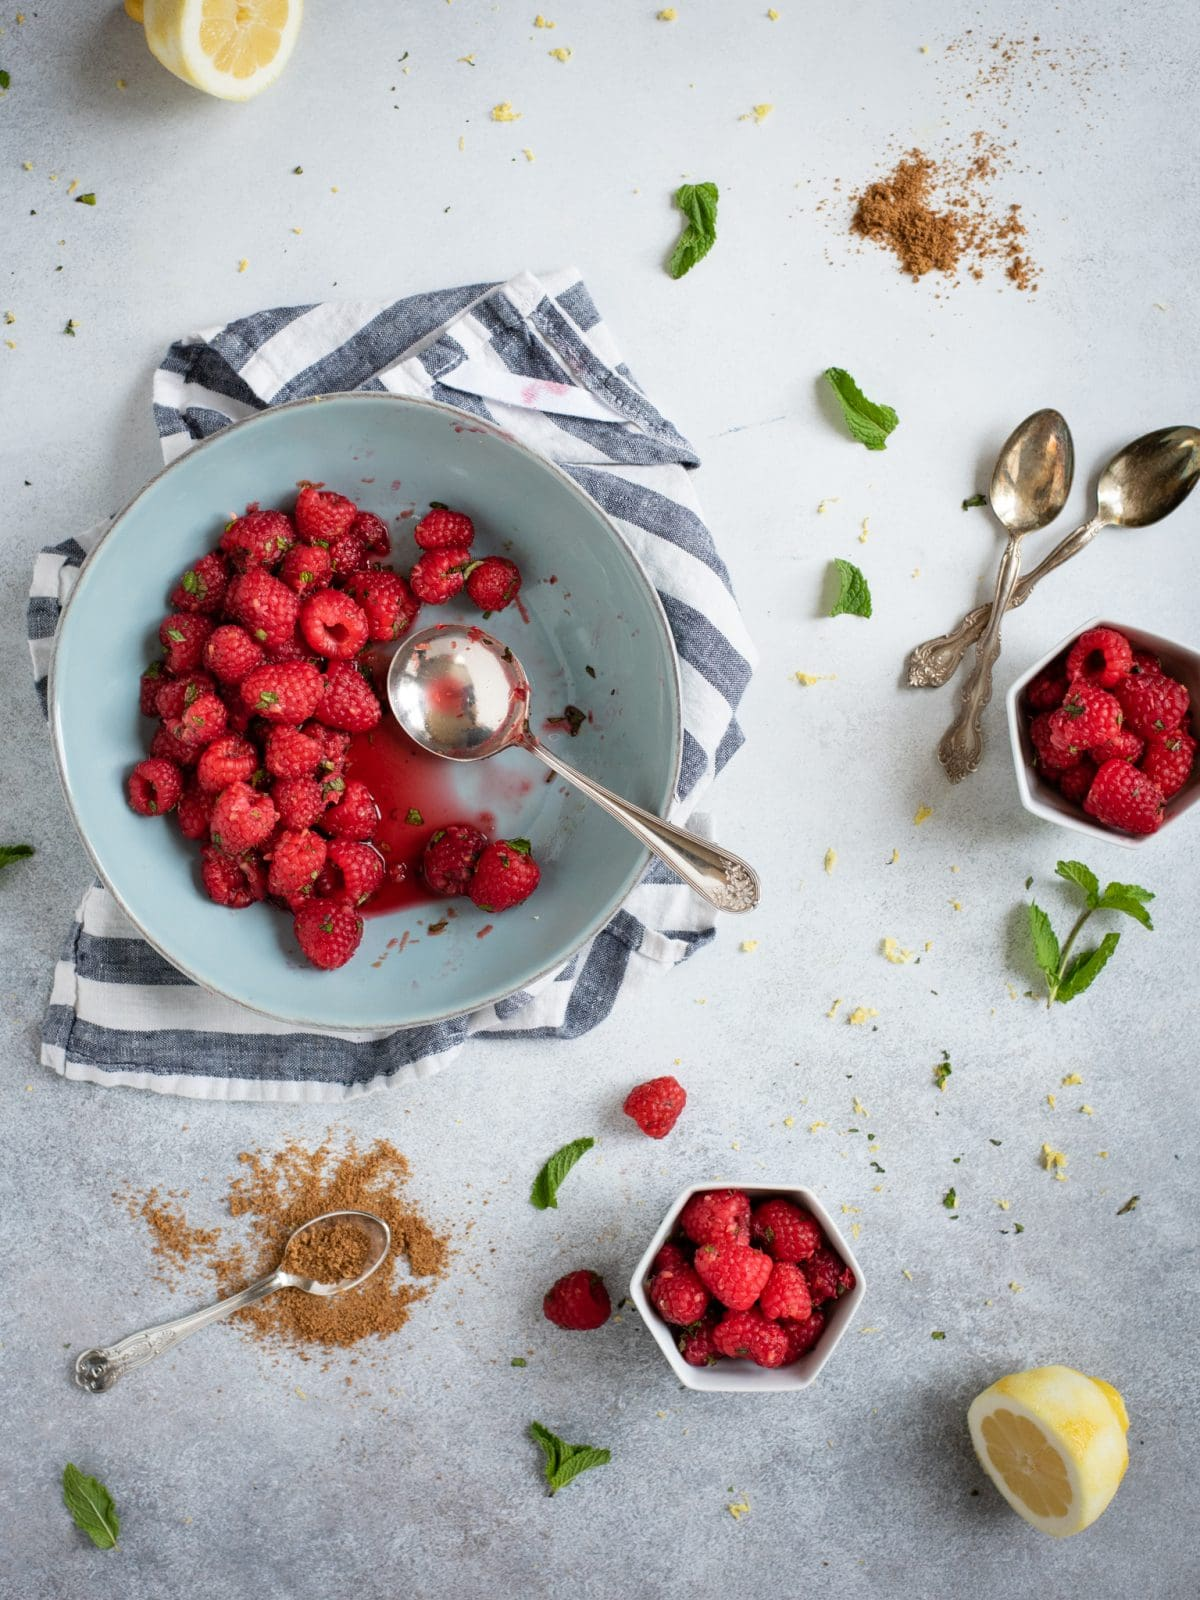 Overhead picture of Raspberries with lemon zest and mint